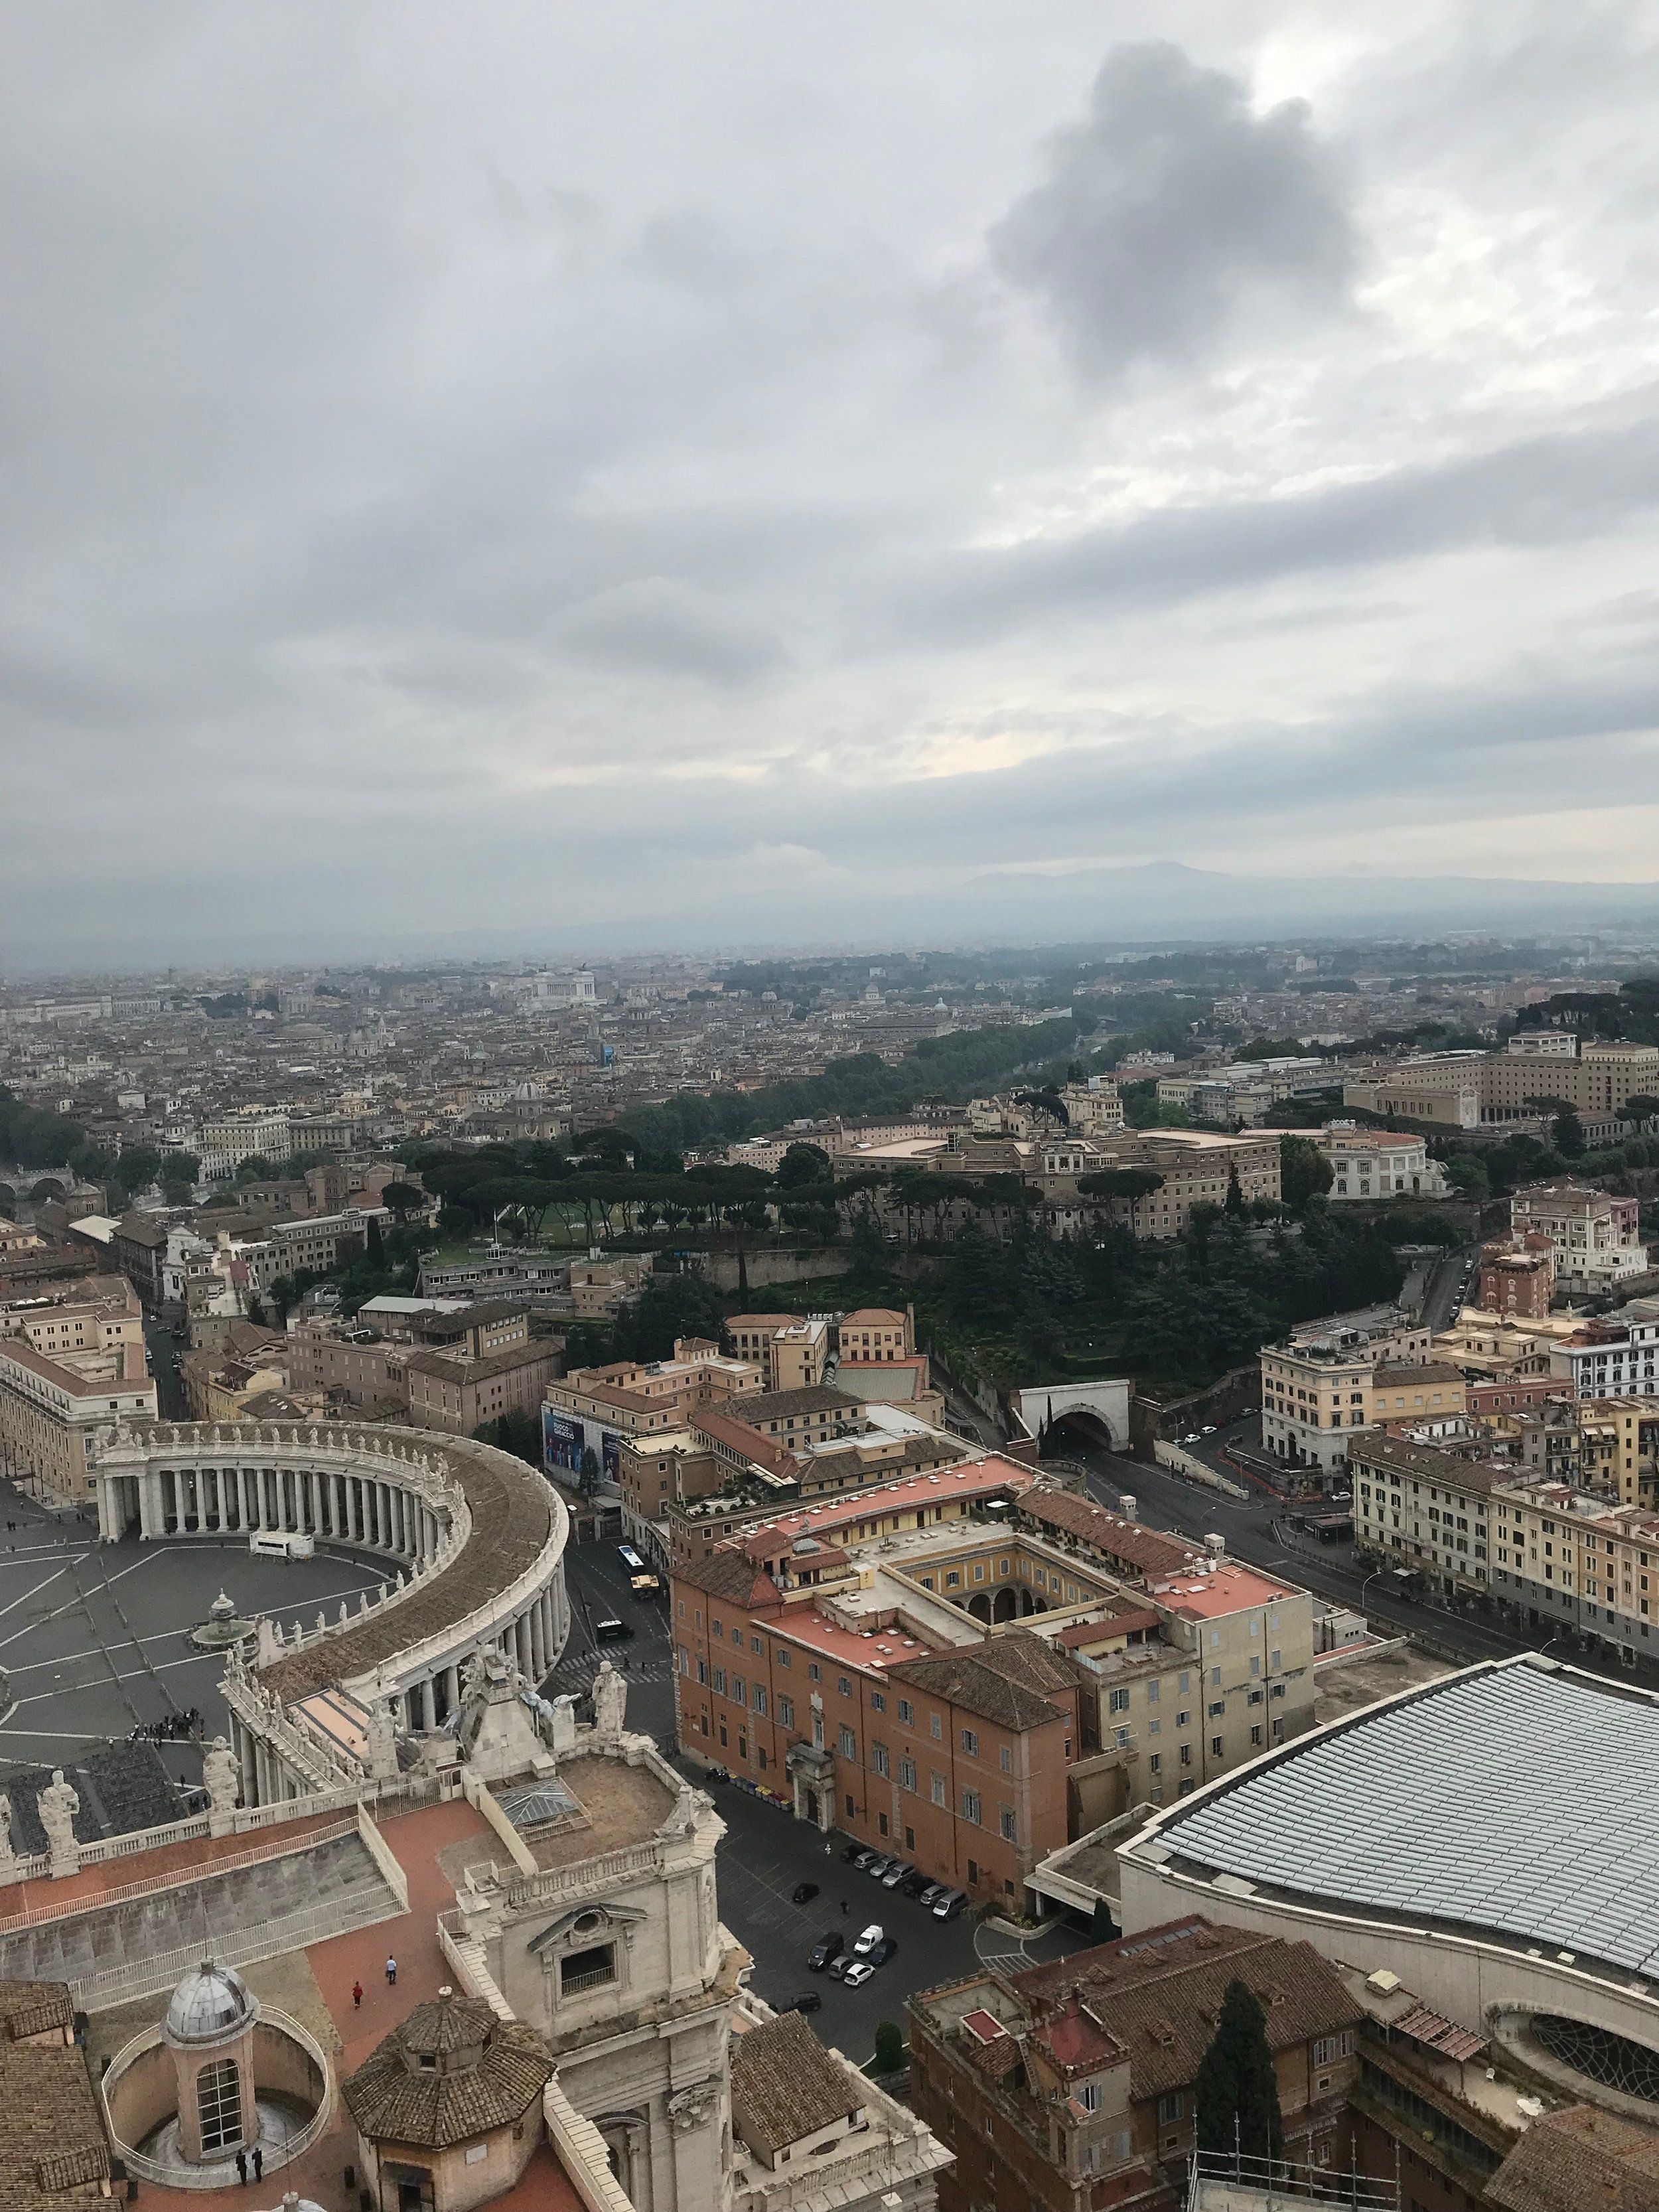 Top of the Basilica